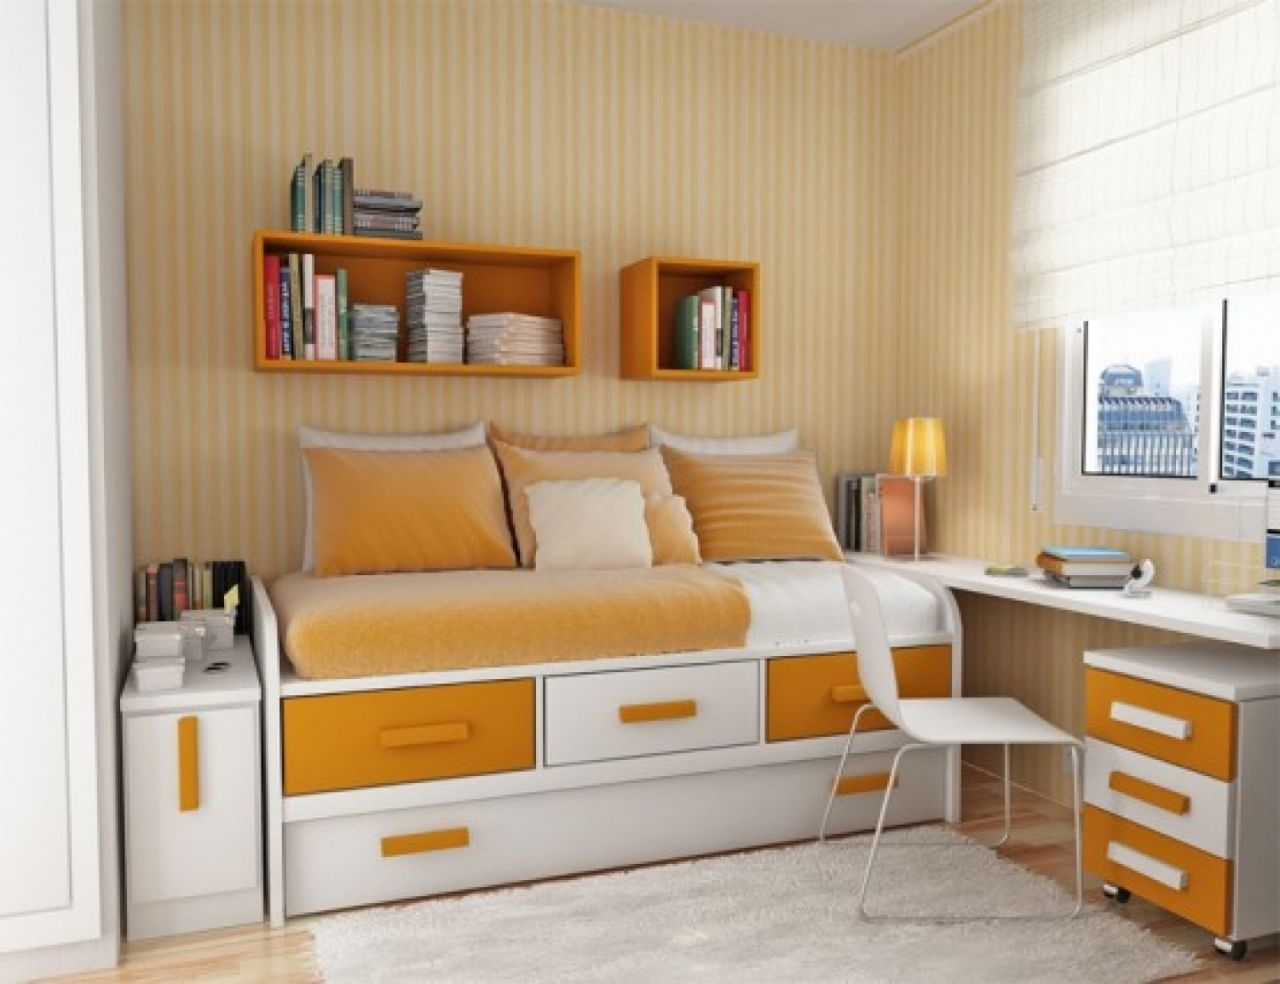 Fascinating Brown and White Boys Bedroom Furniture Completing Small Area with Floating Bookshelves